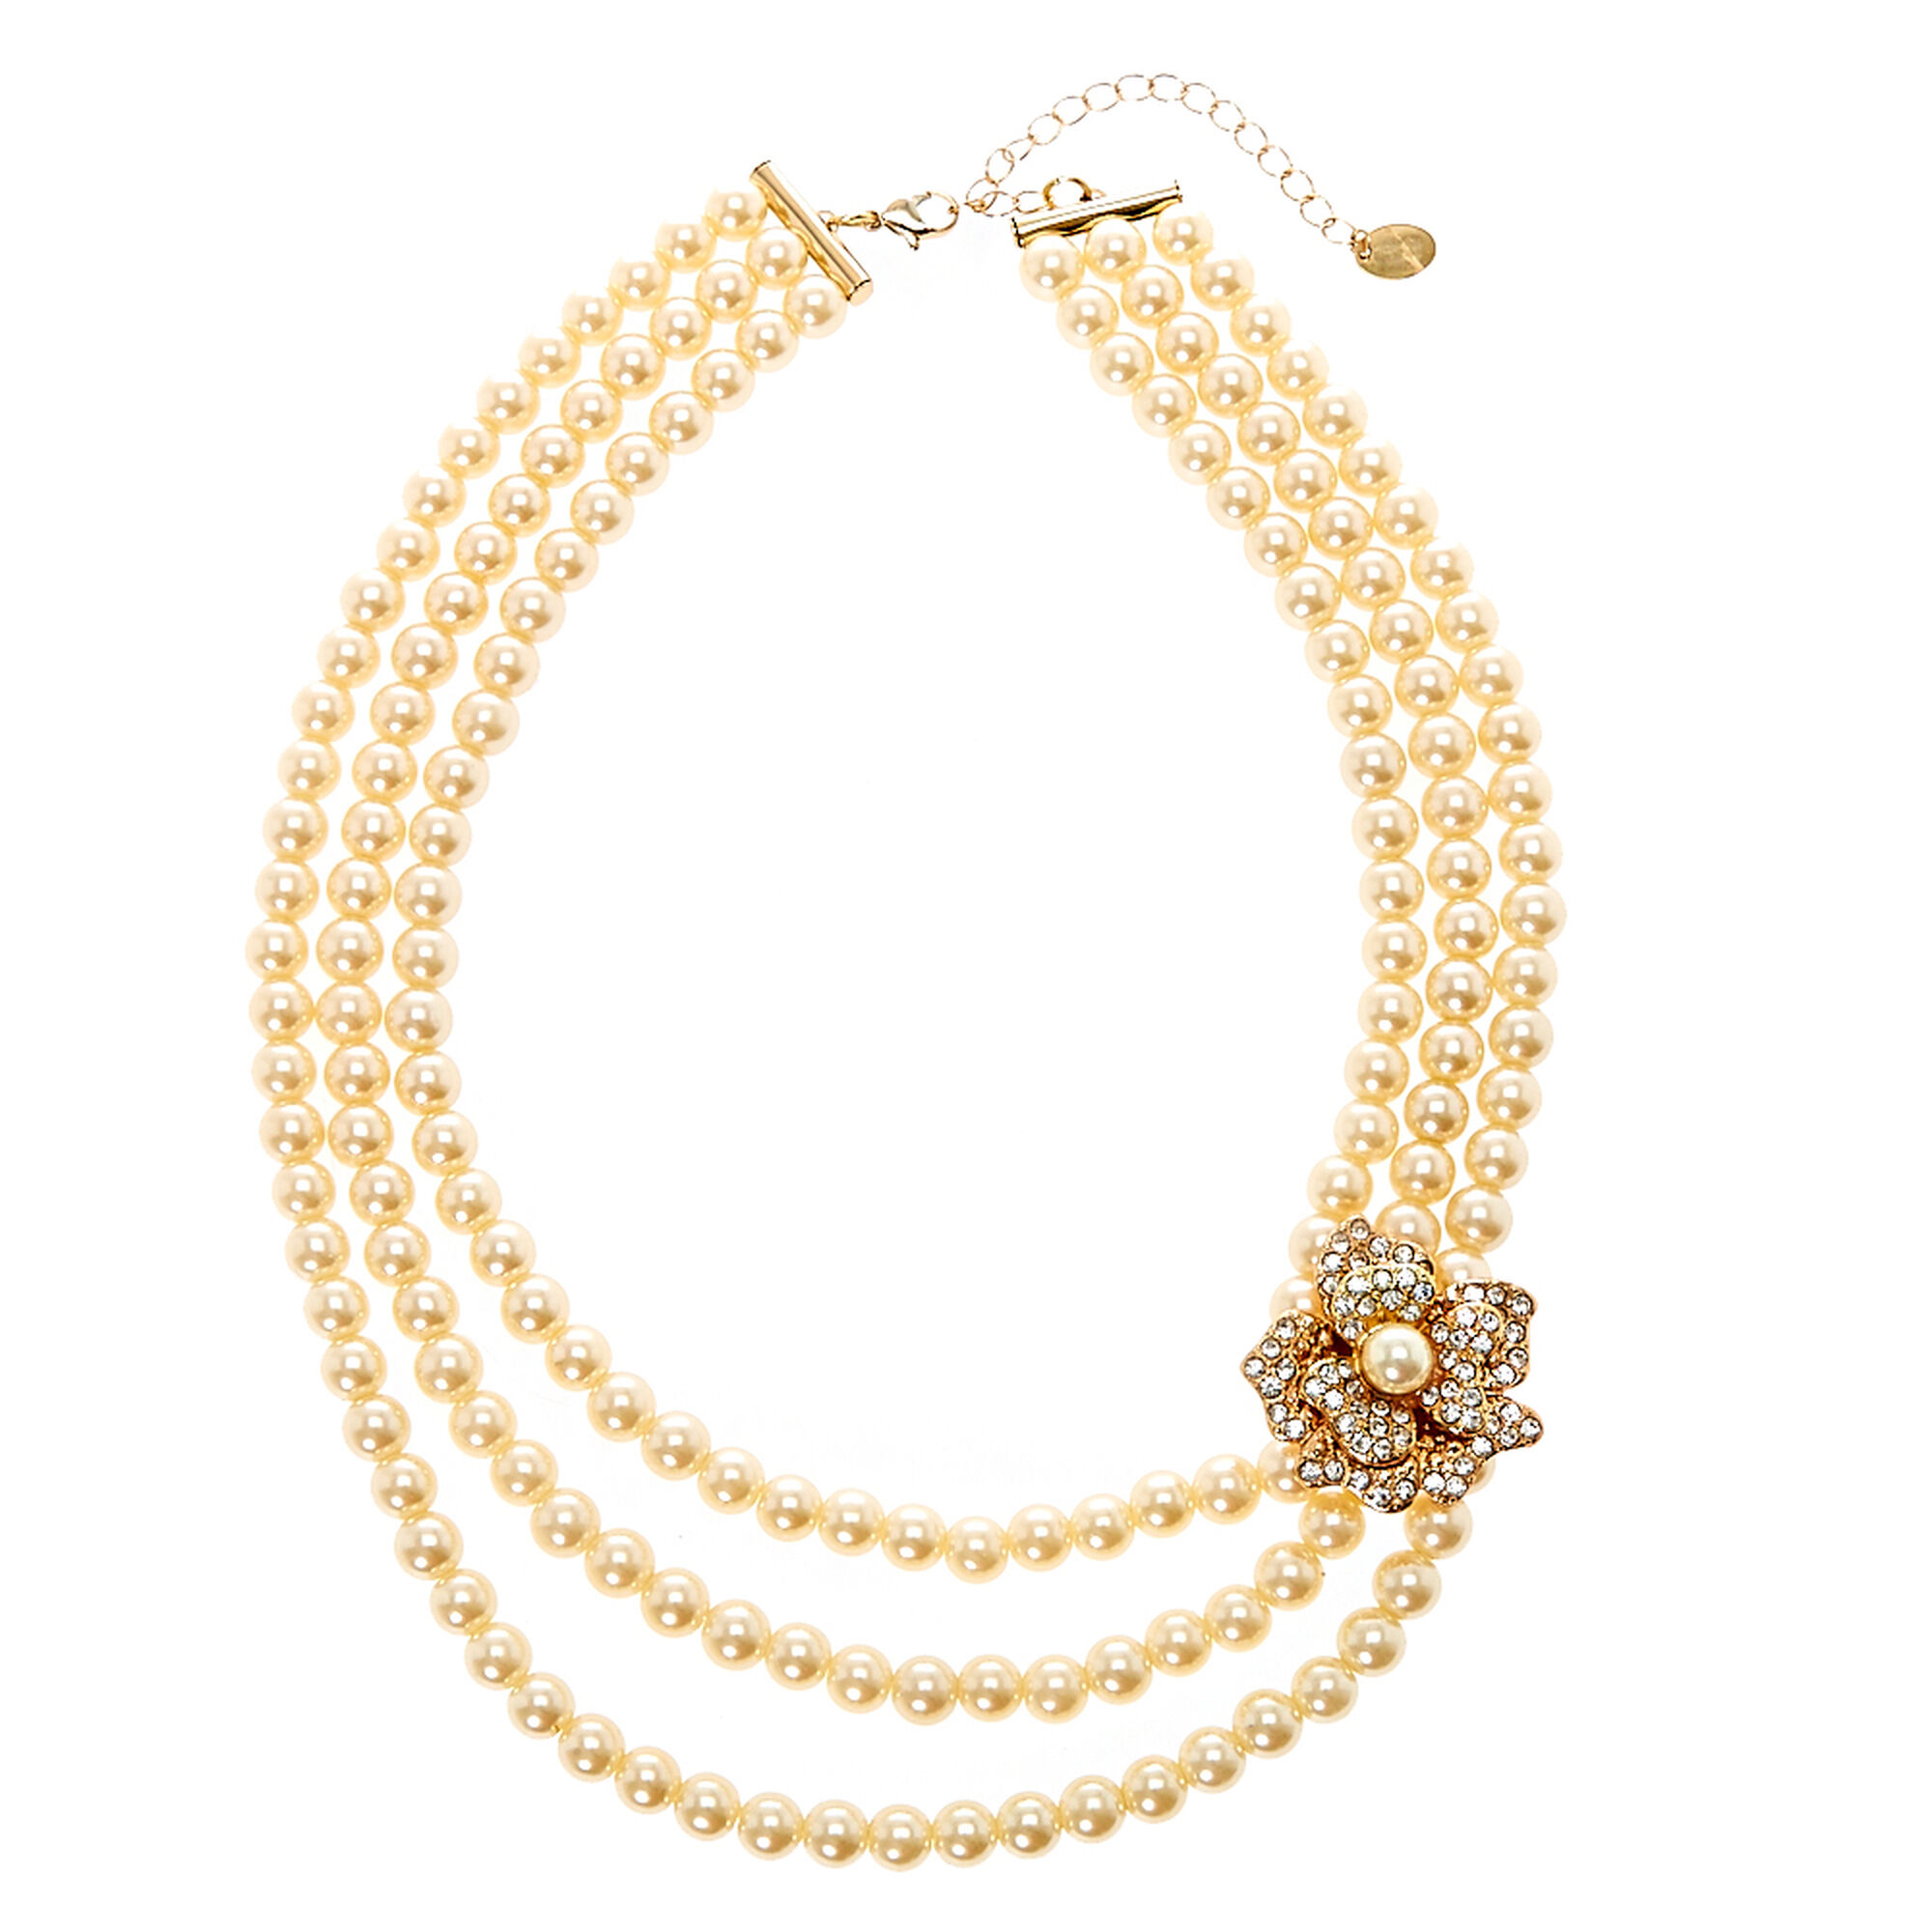 by tahitian cordas hawaii pearl toni jewel pearls necklace in product triple gold